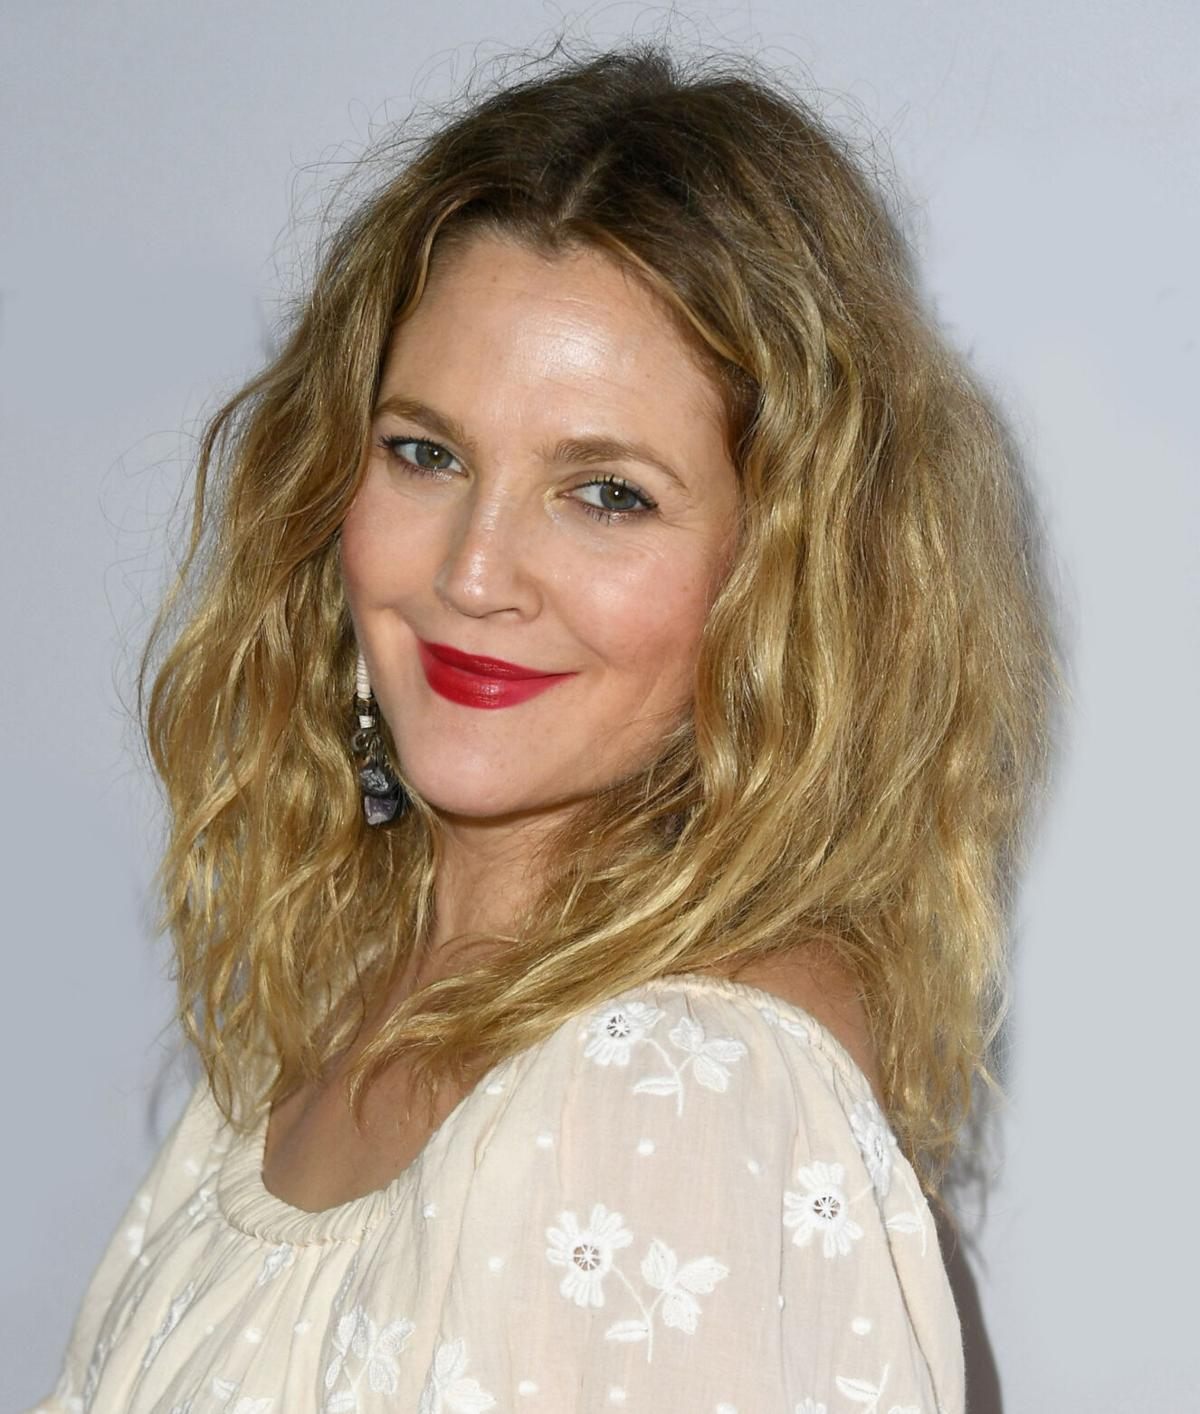 Drew Barrymore, LaVar Burton among guest hosts for 'CBS This Morning'